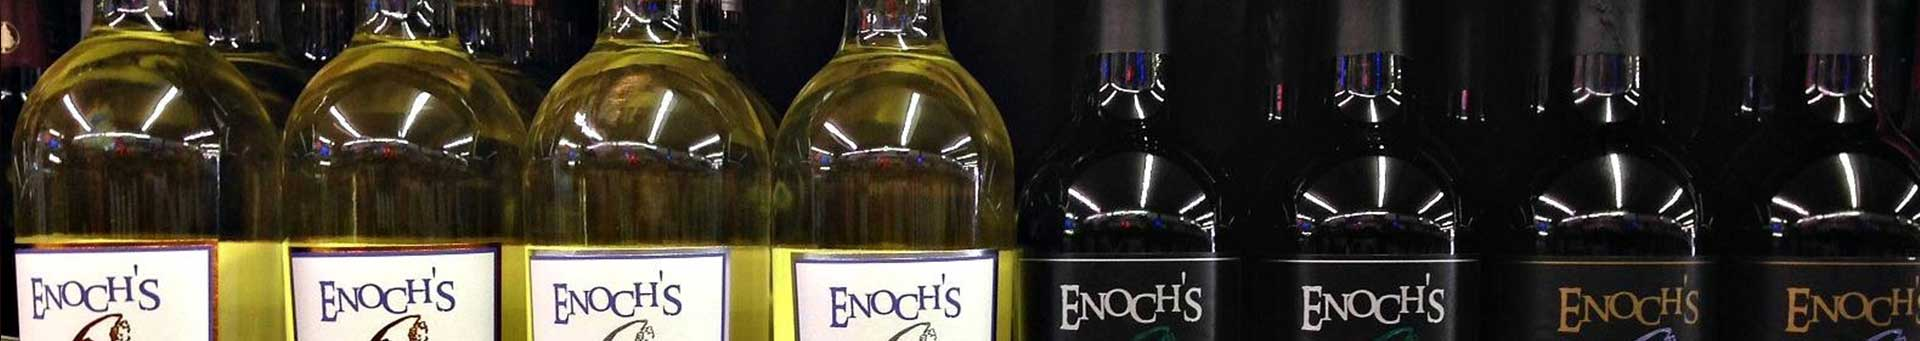 Enoch's Stomp Vineyward & Winery